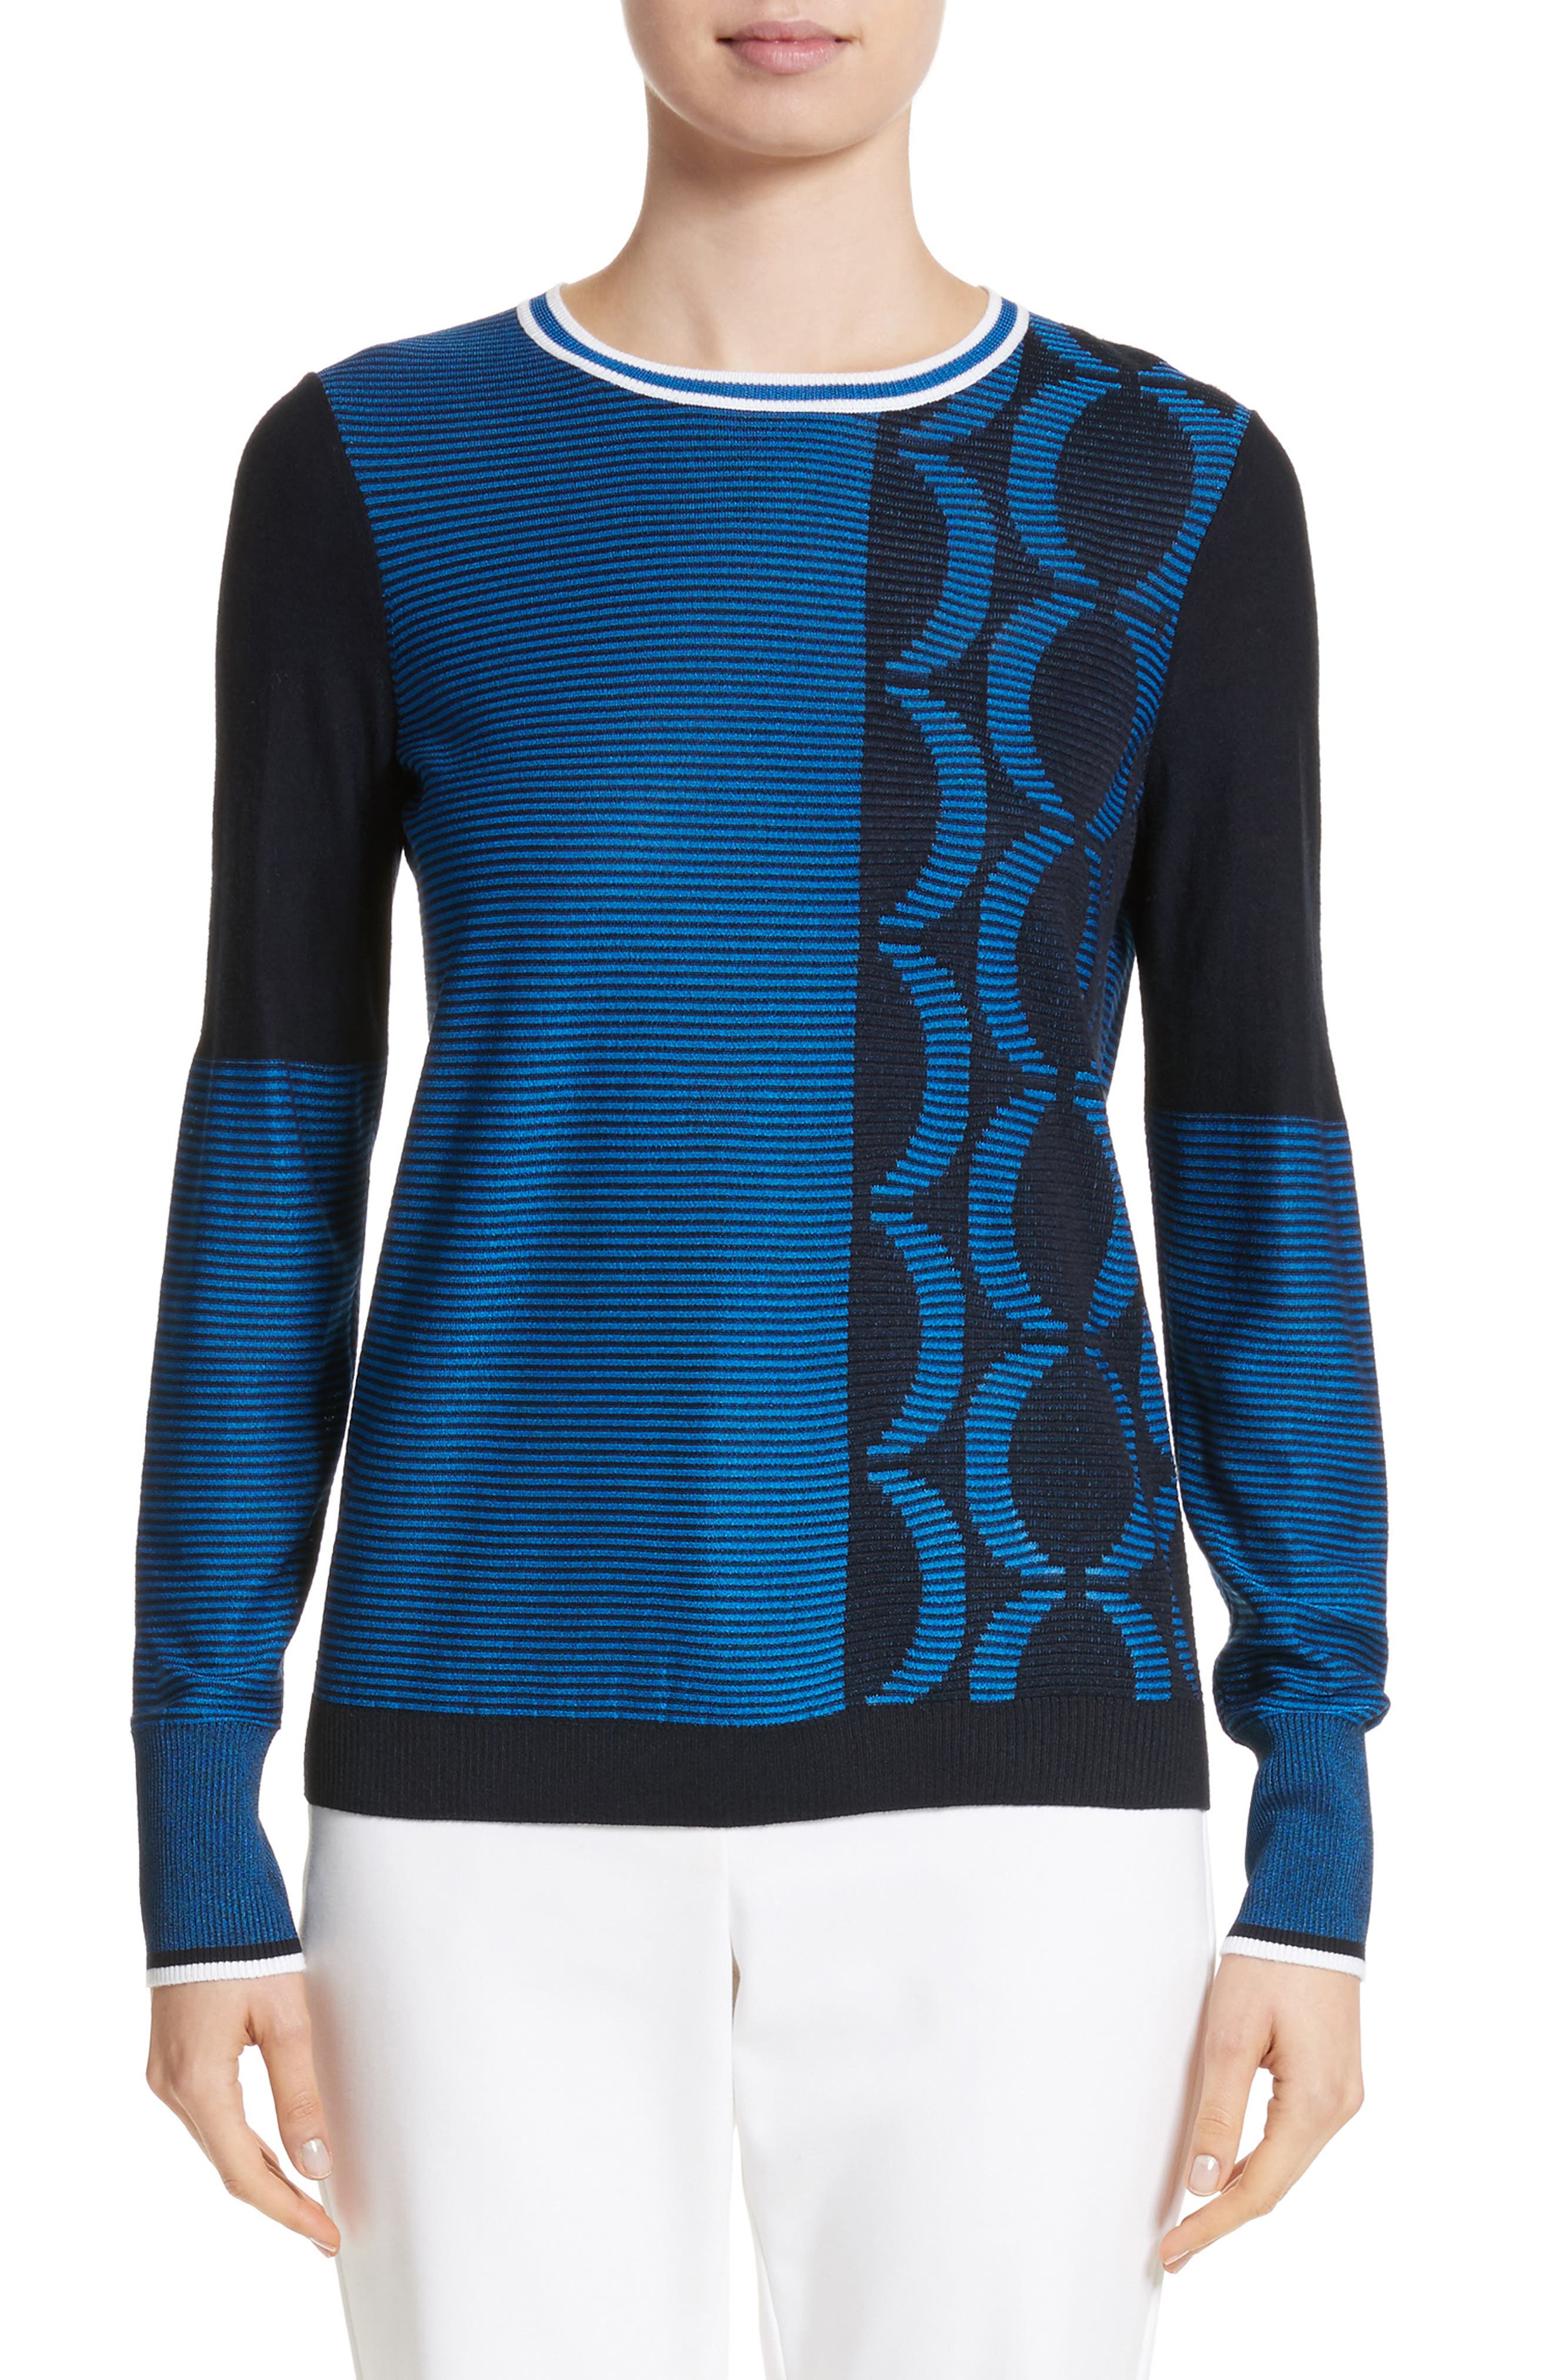 St. John Collection Jacquard Knit Sweater